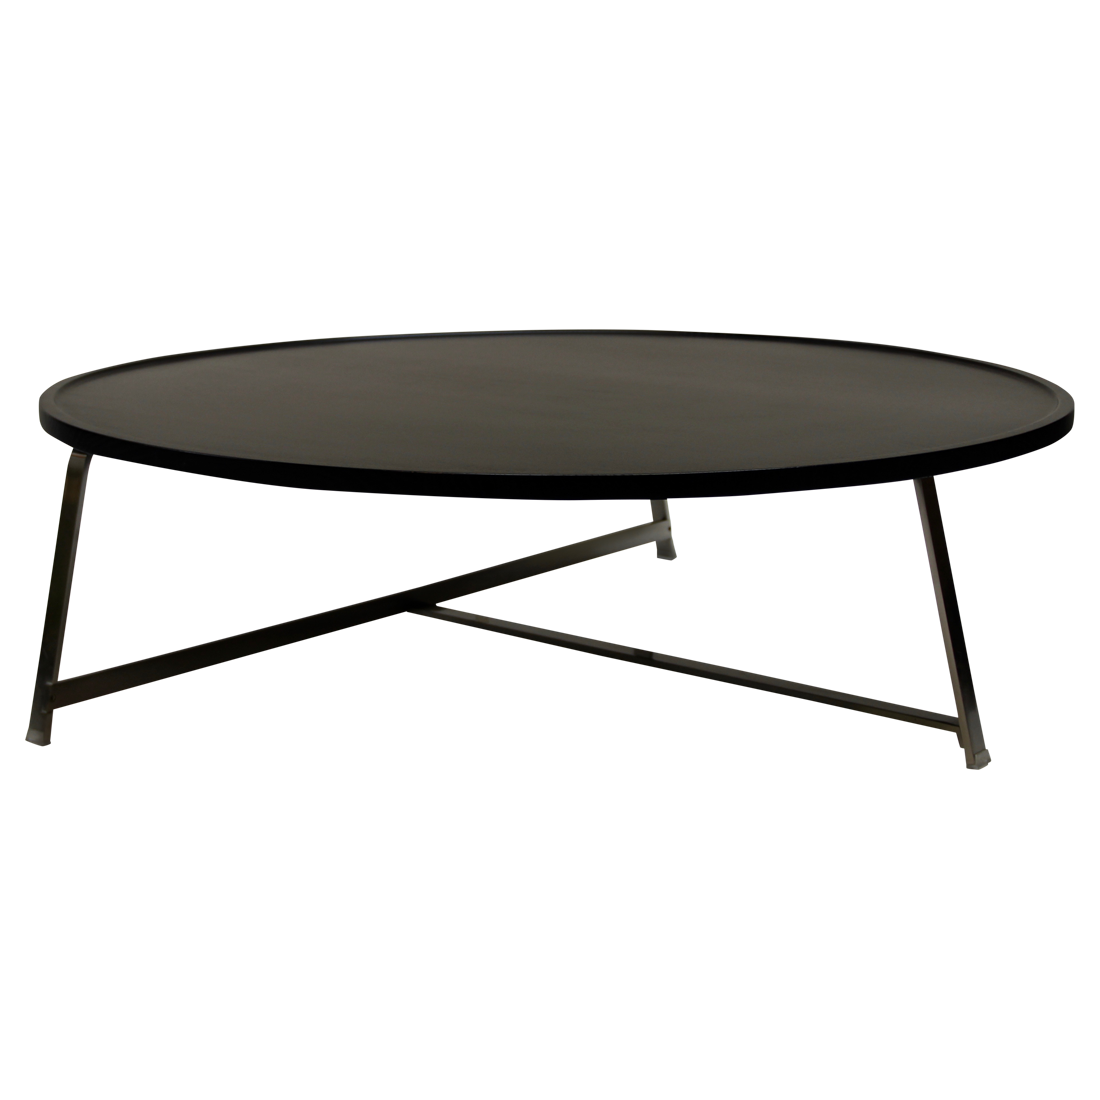 grande table basse ronde 9 id es de d coration int rieure french decor. Black Bedroom Furniture Sets. Home Design Ideas